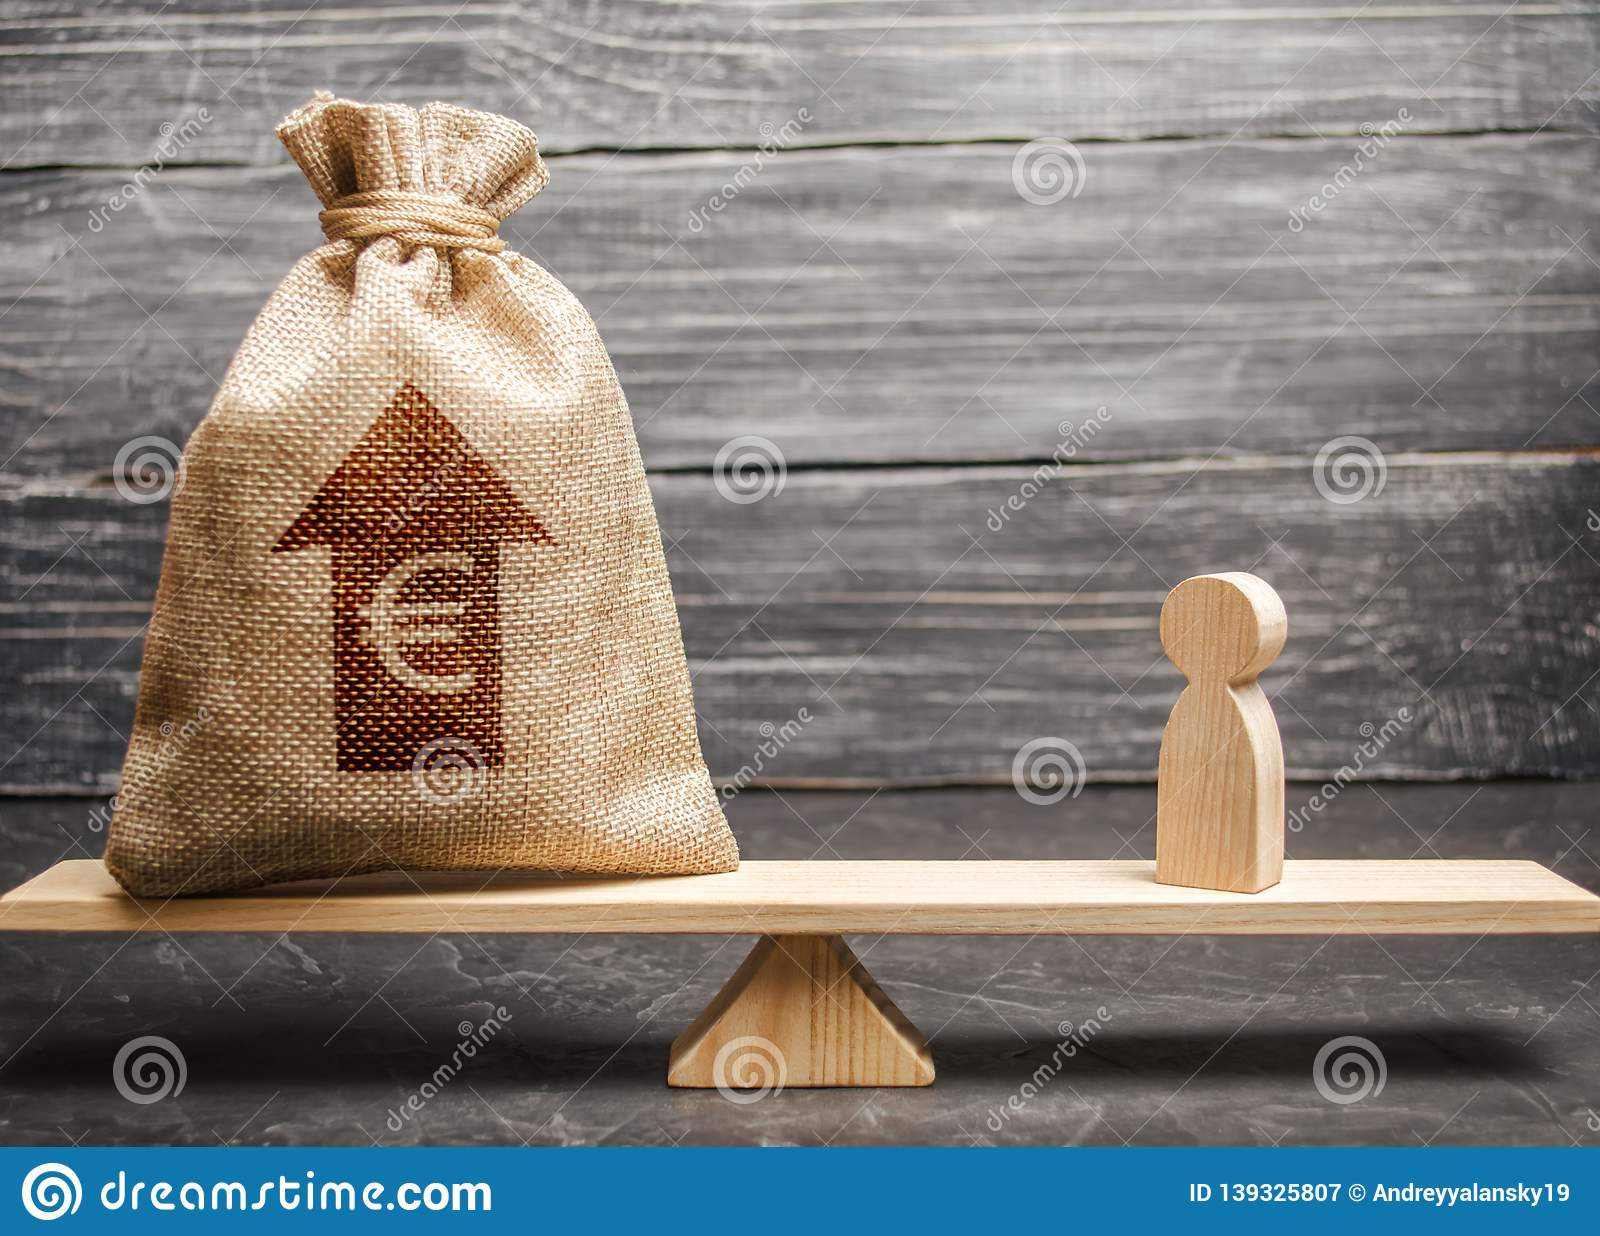 Euro Money Bag With Up Arrow And Man Figurine On Scales  The Average